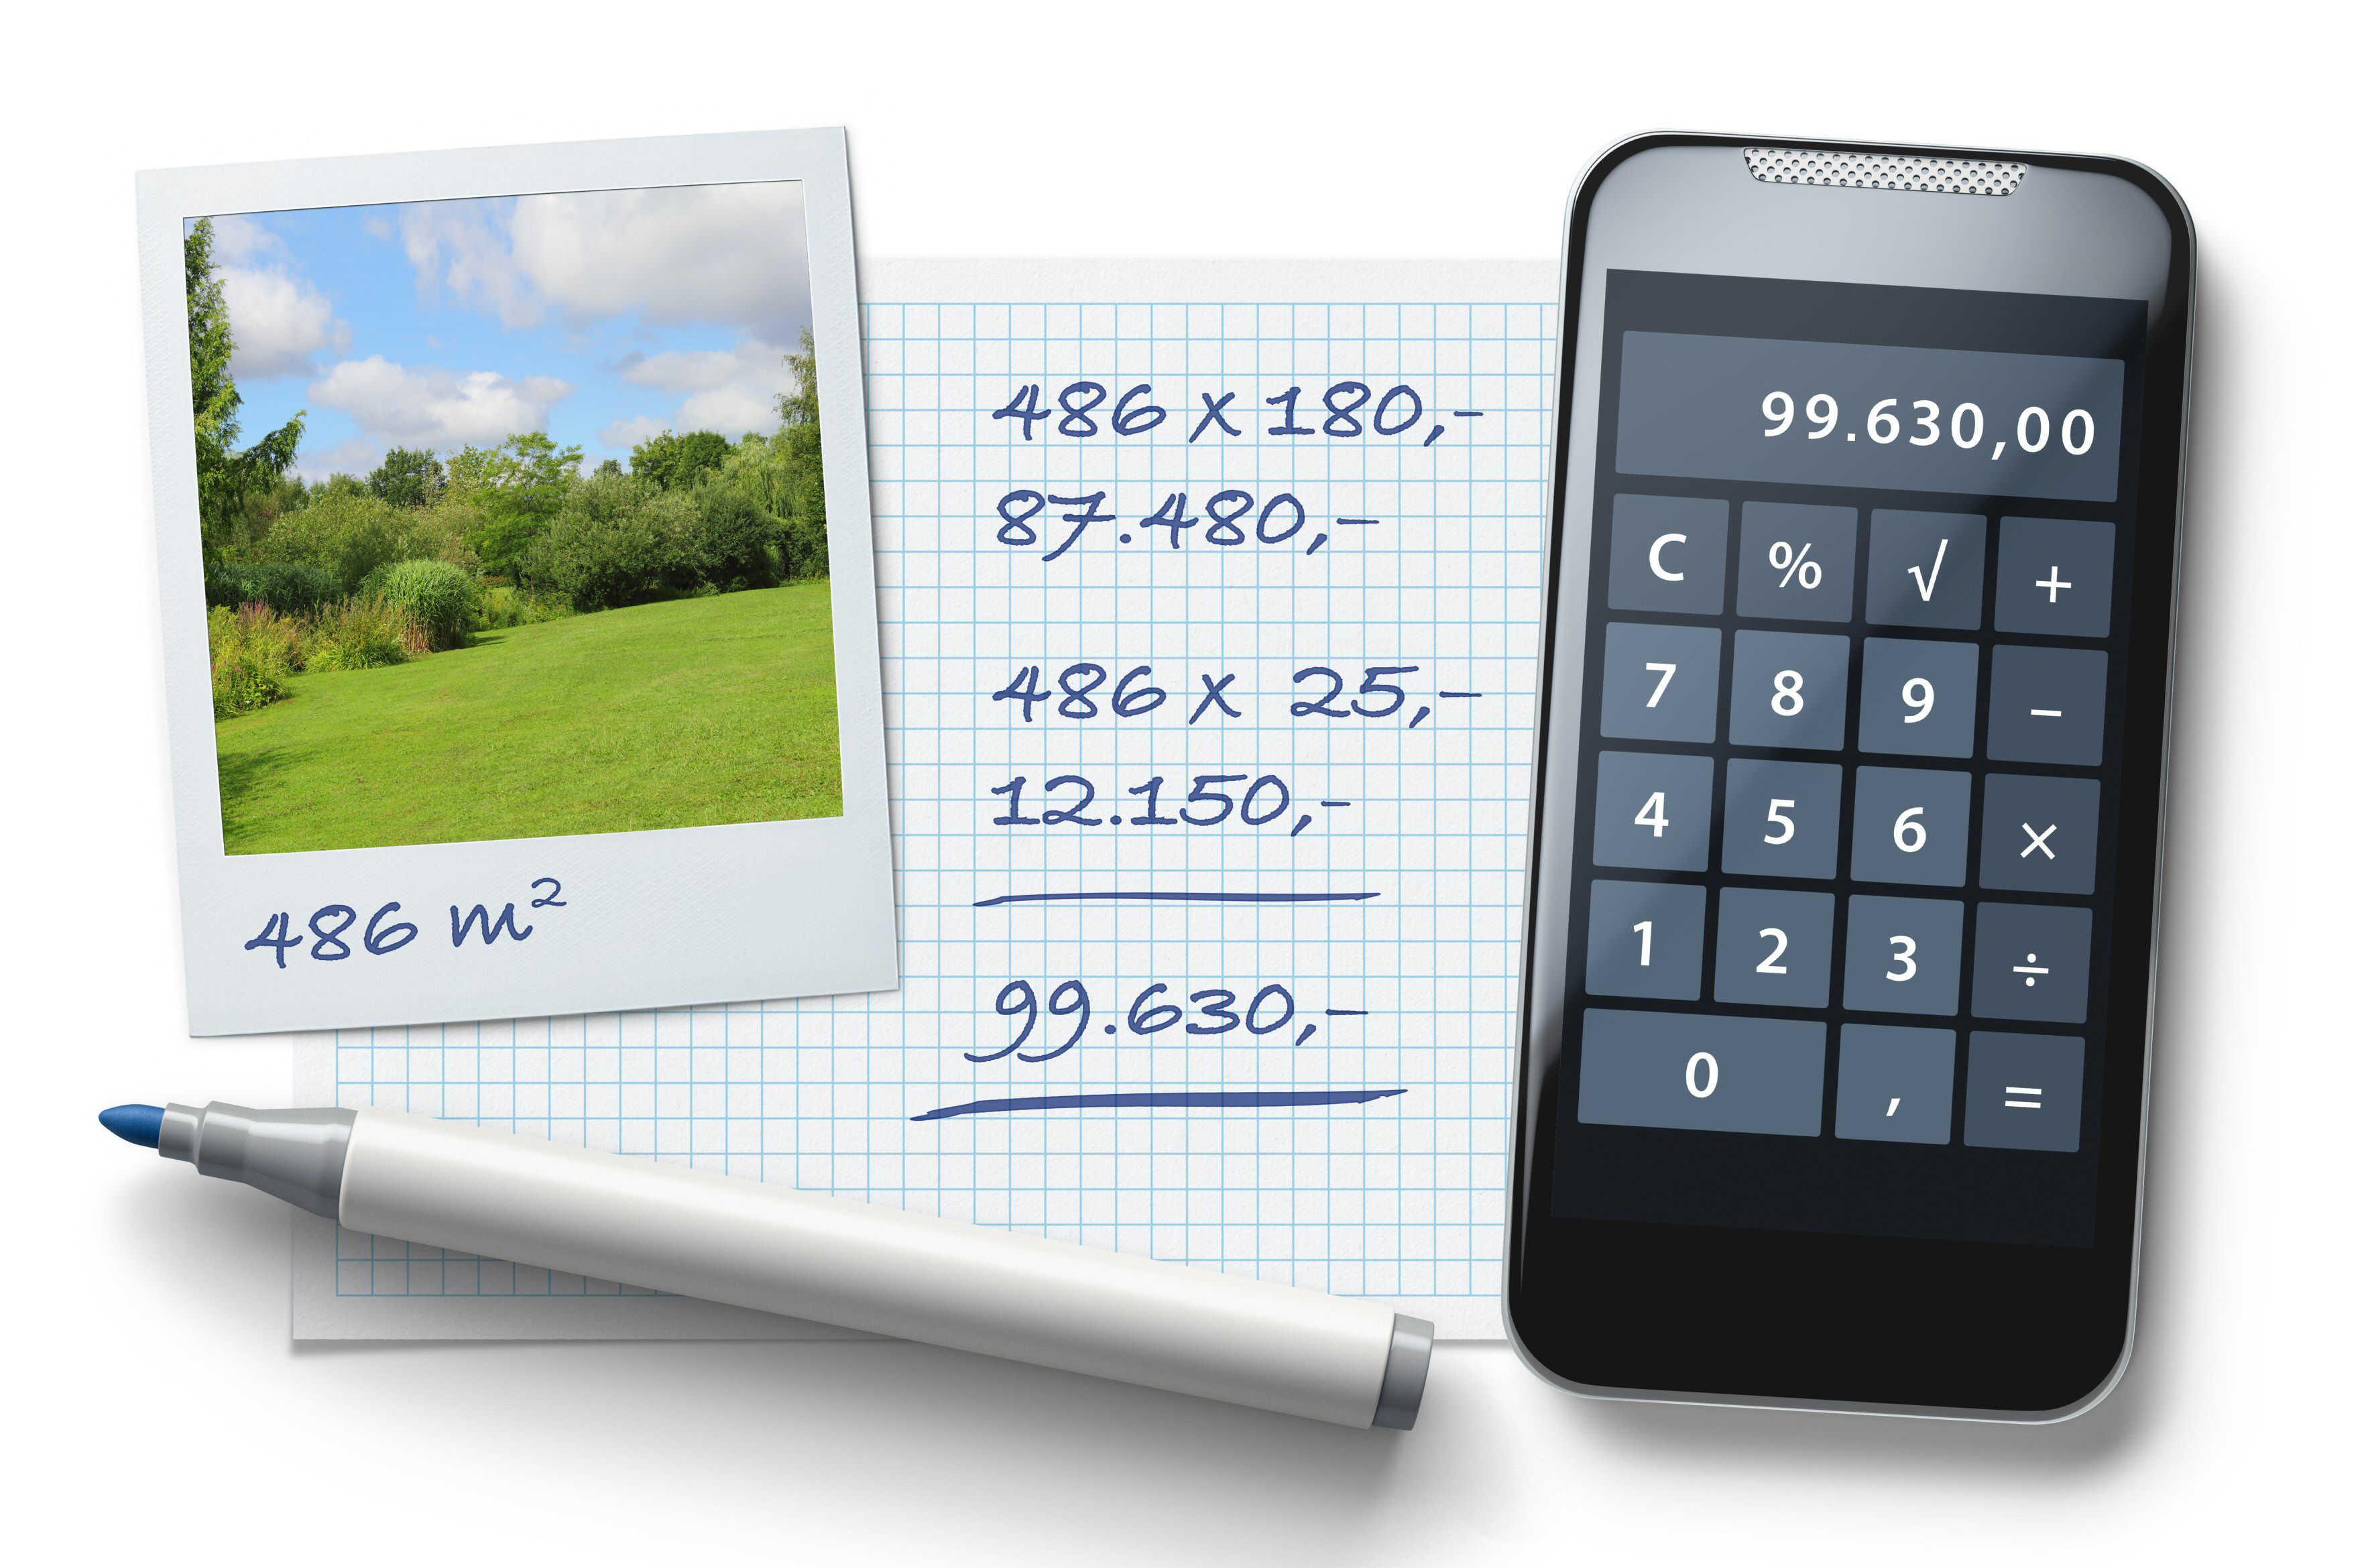 Photo of a property and calculator, figuring out and estimating building costs